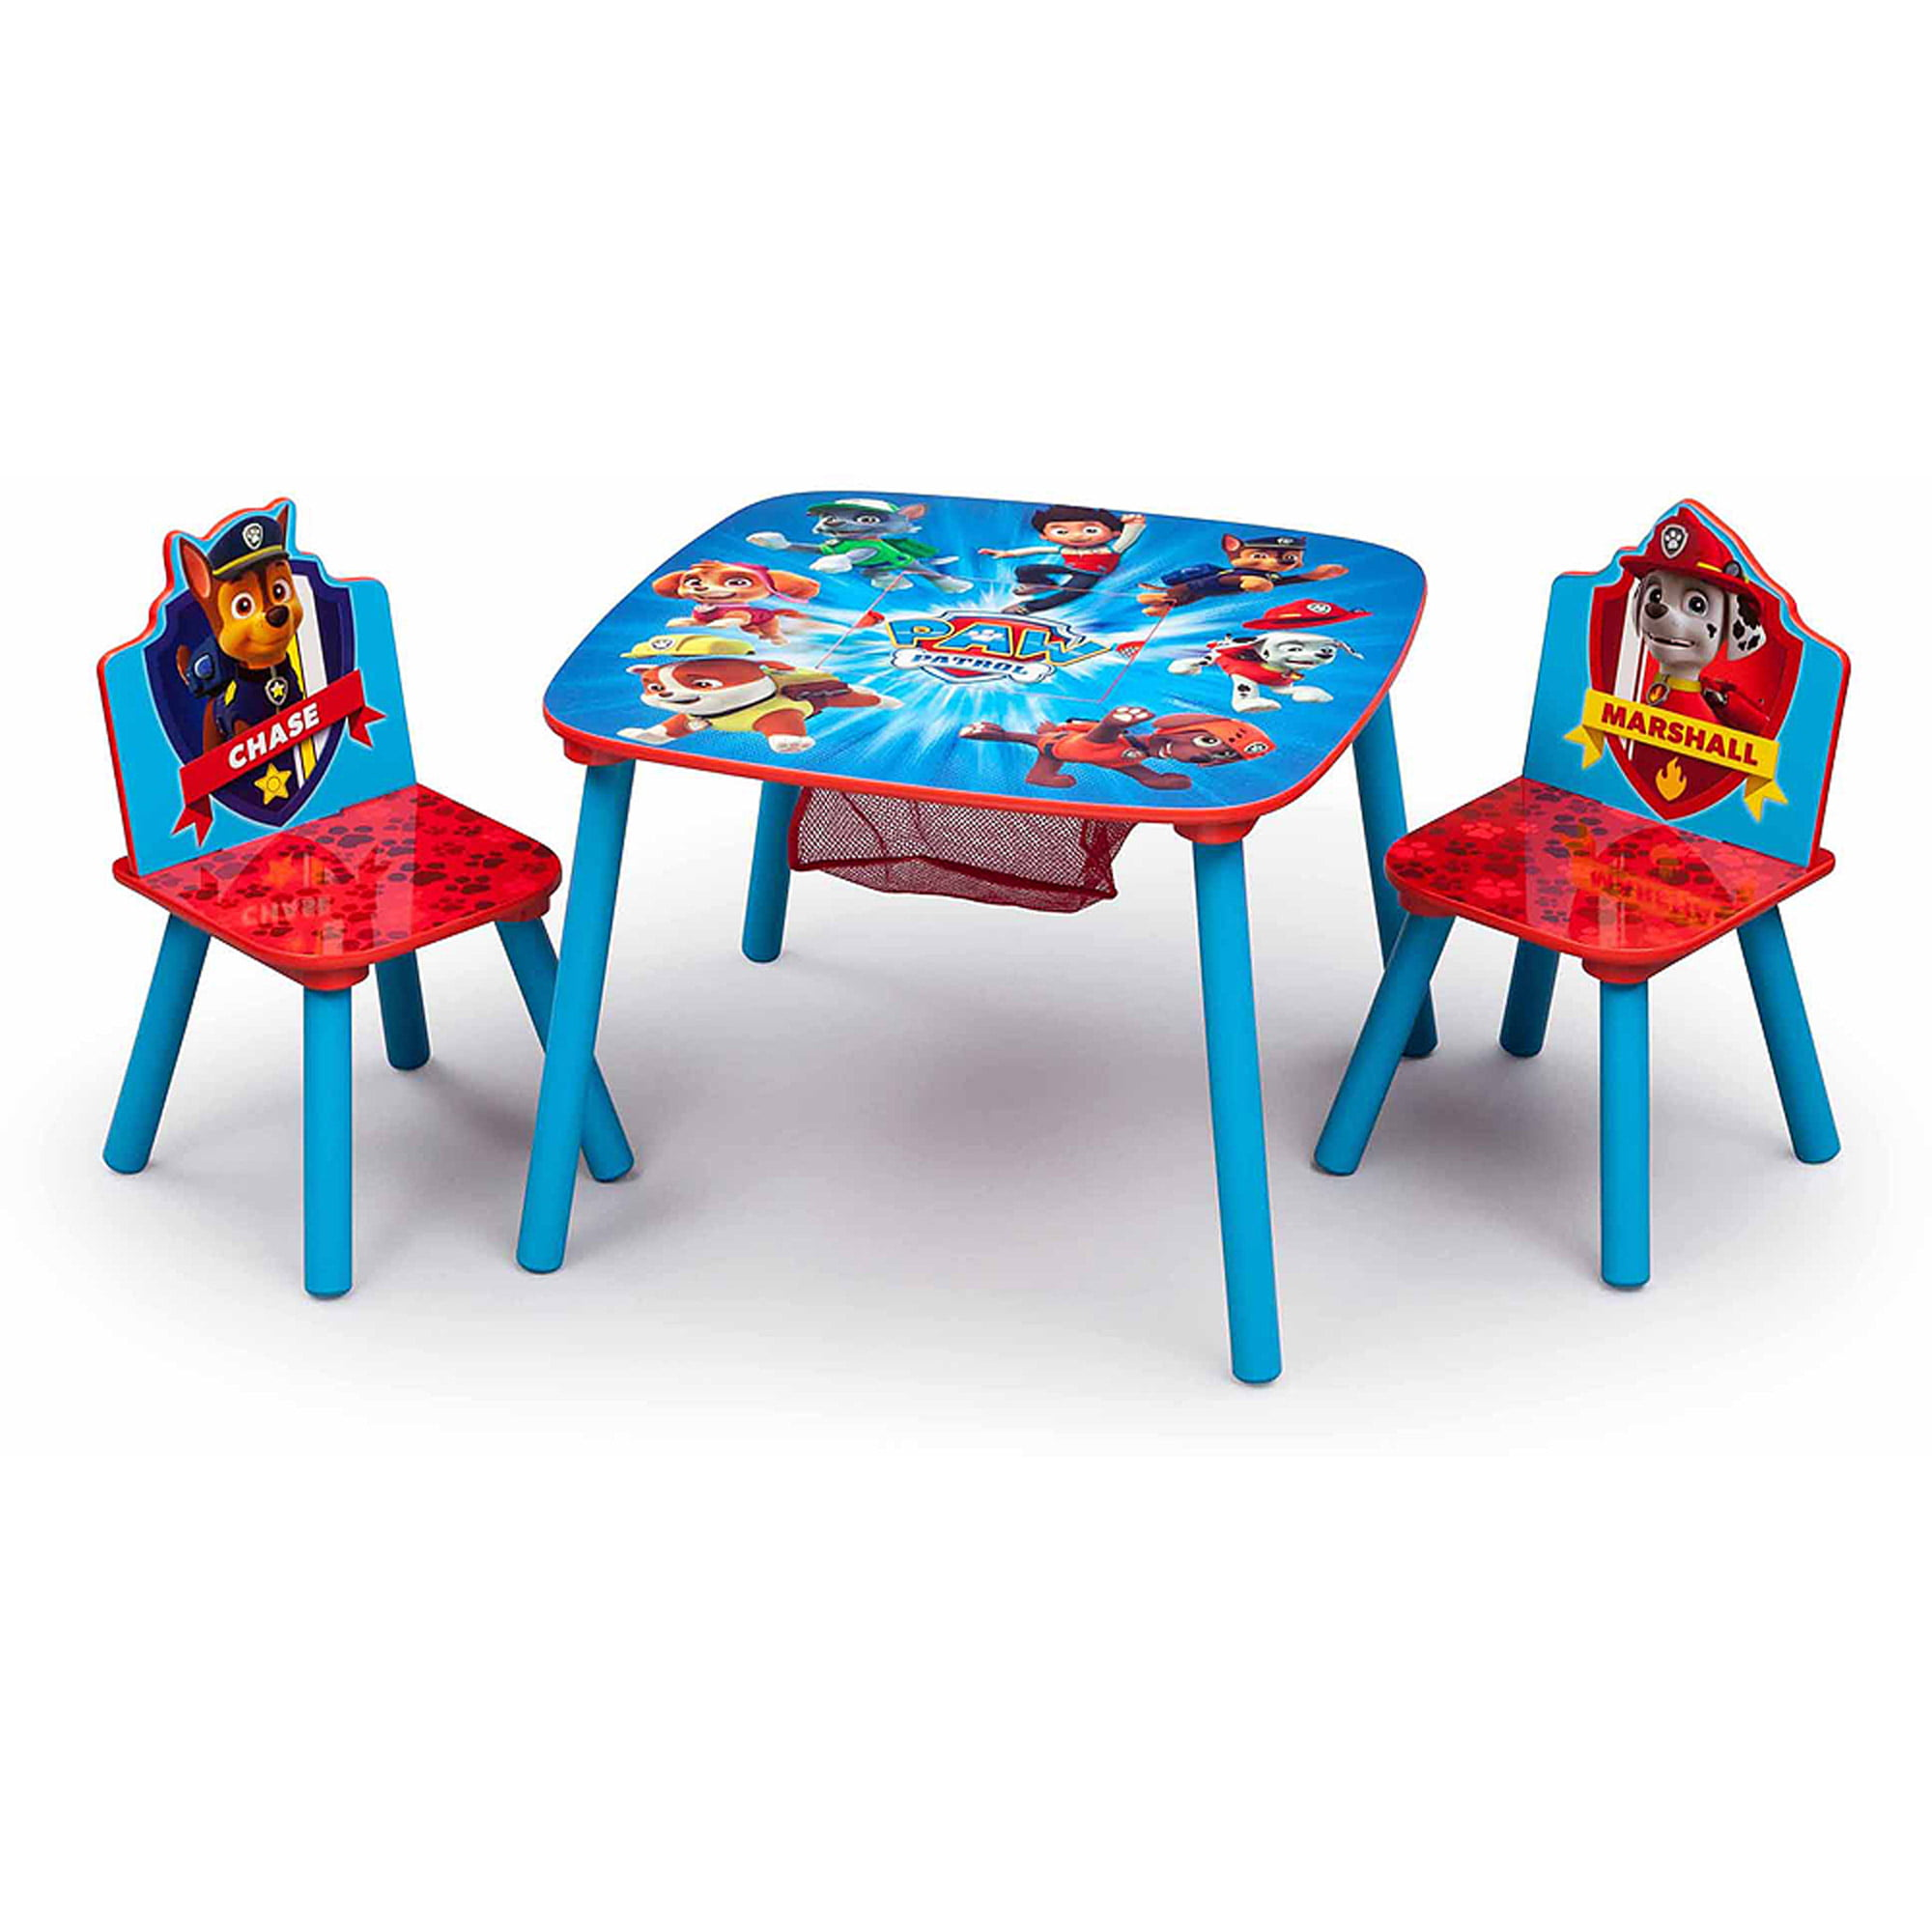 sc 1 st  Walmart : childrens table chairs sets - pezcame.com